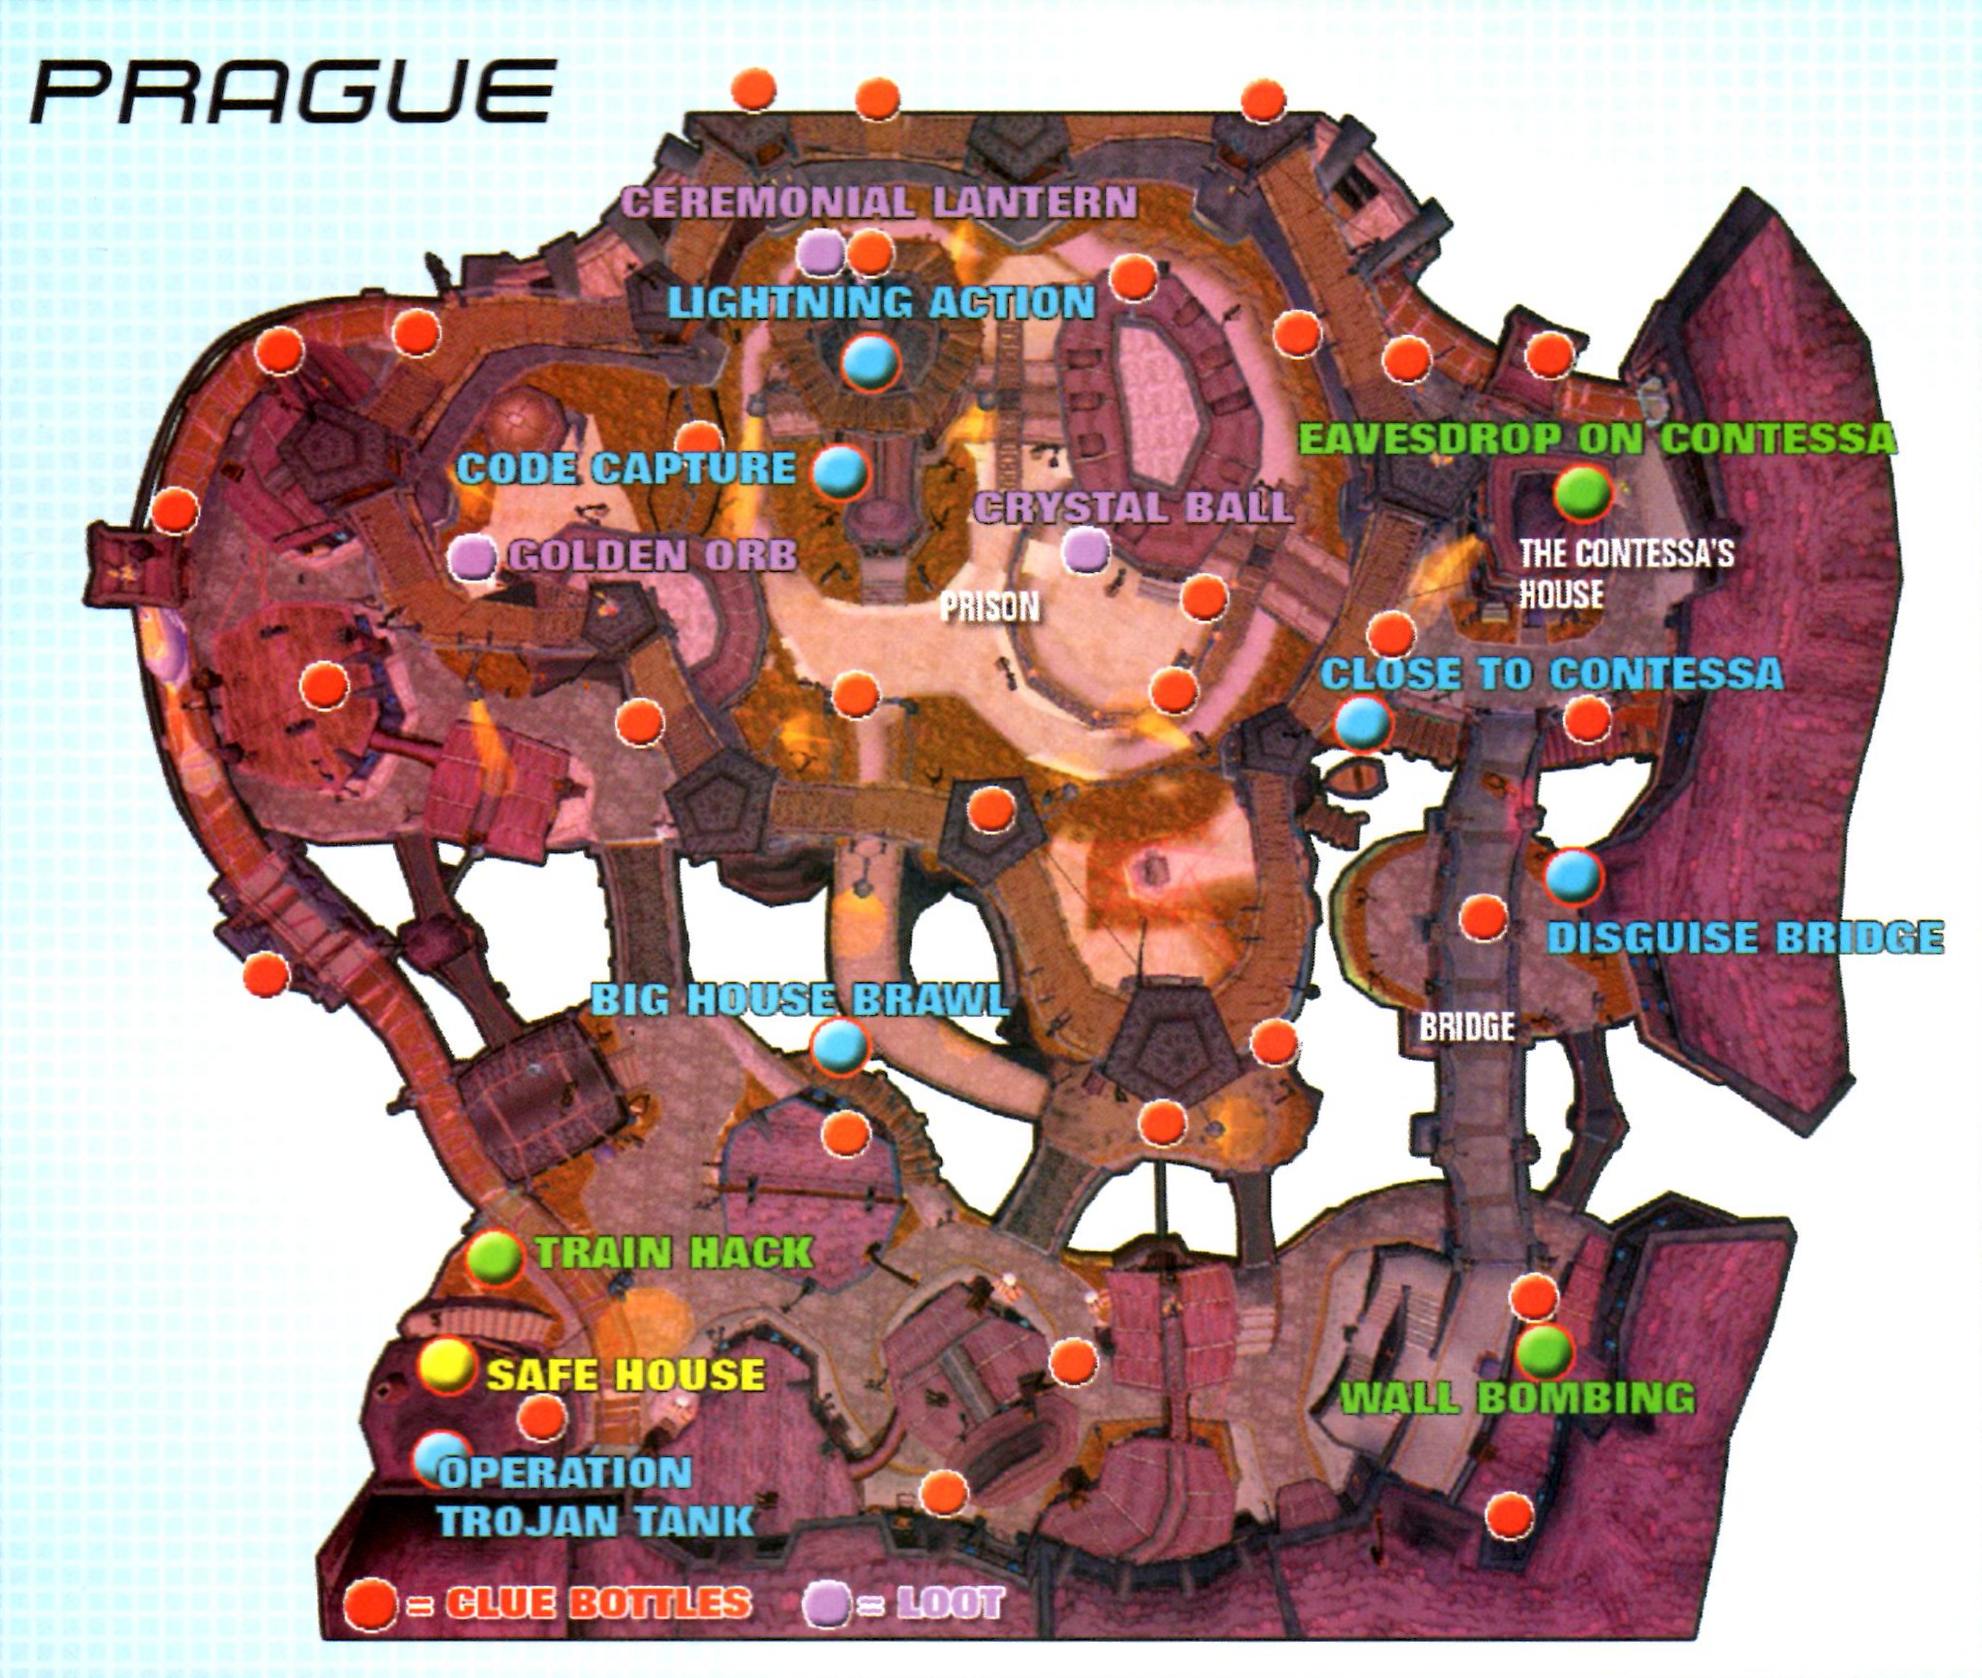 Image Prague1map Png Sly Cooper Wiki Fandom Powered